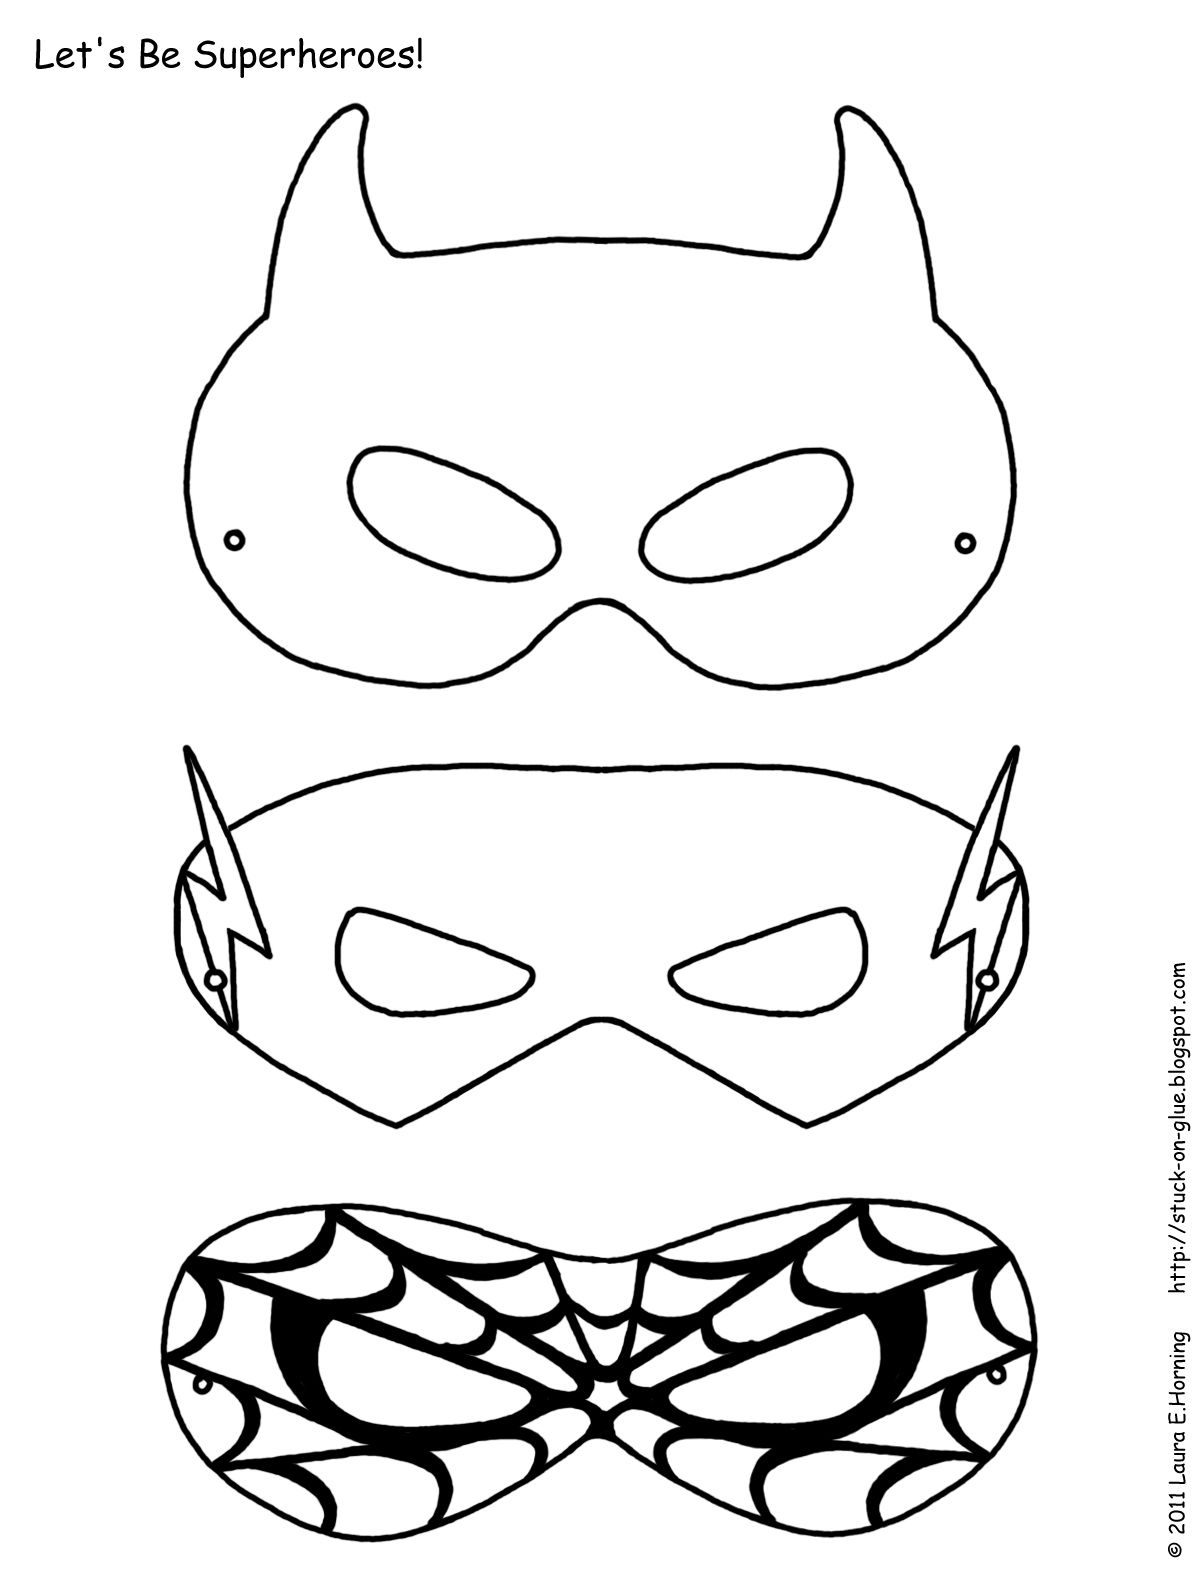 Mask Printable | Free Printable Superhero Mask Template | Masks - Free Printable Masks